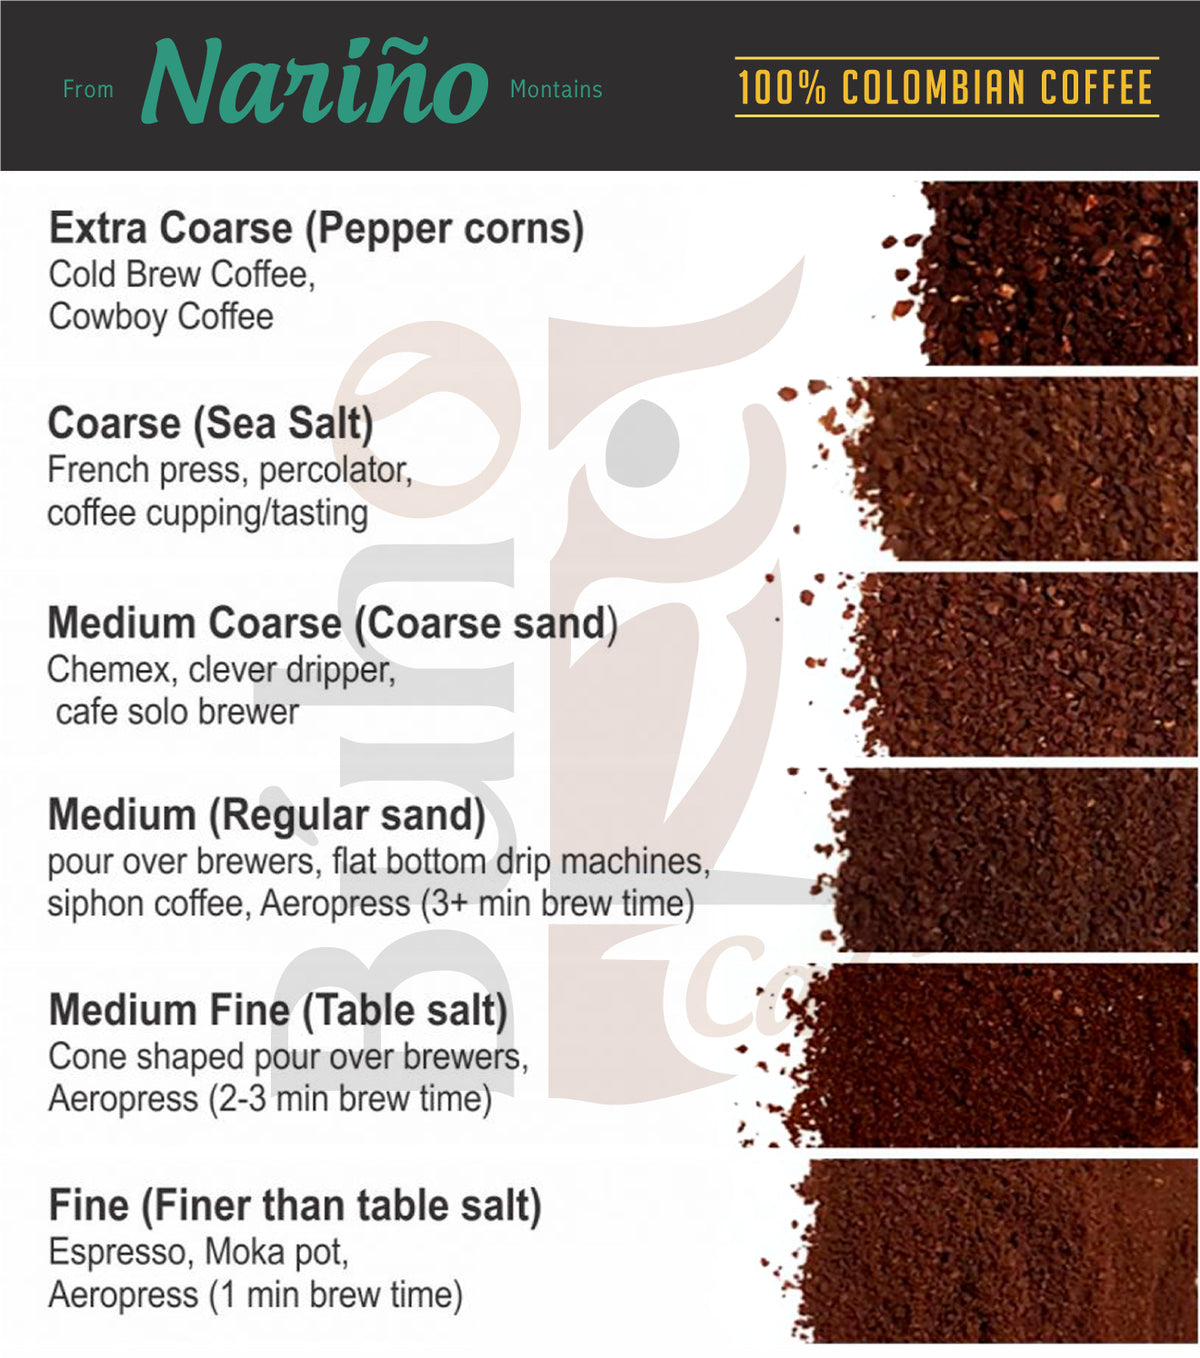 100% Colombian - Búho Café Nariño - Medium Roast Bean  *only 23.99 - 24 OZ*